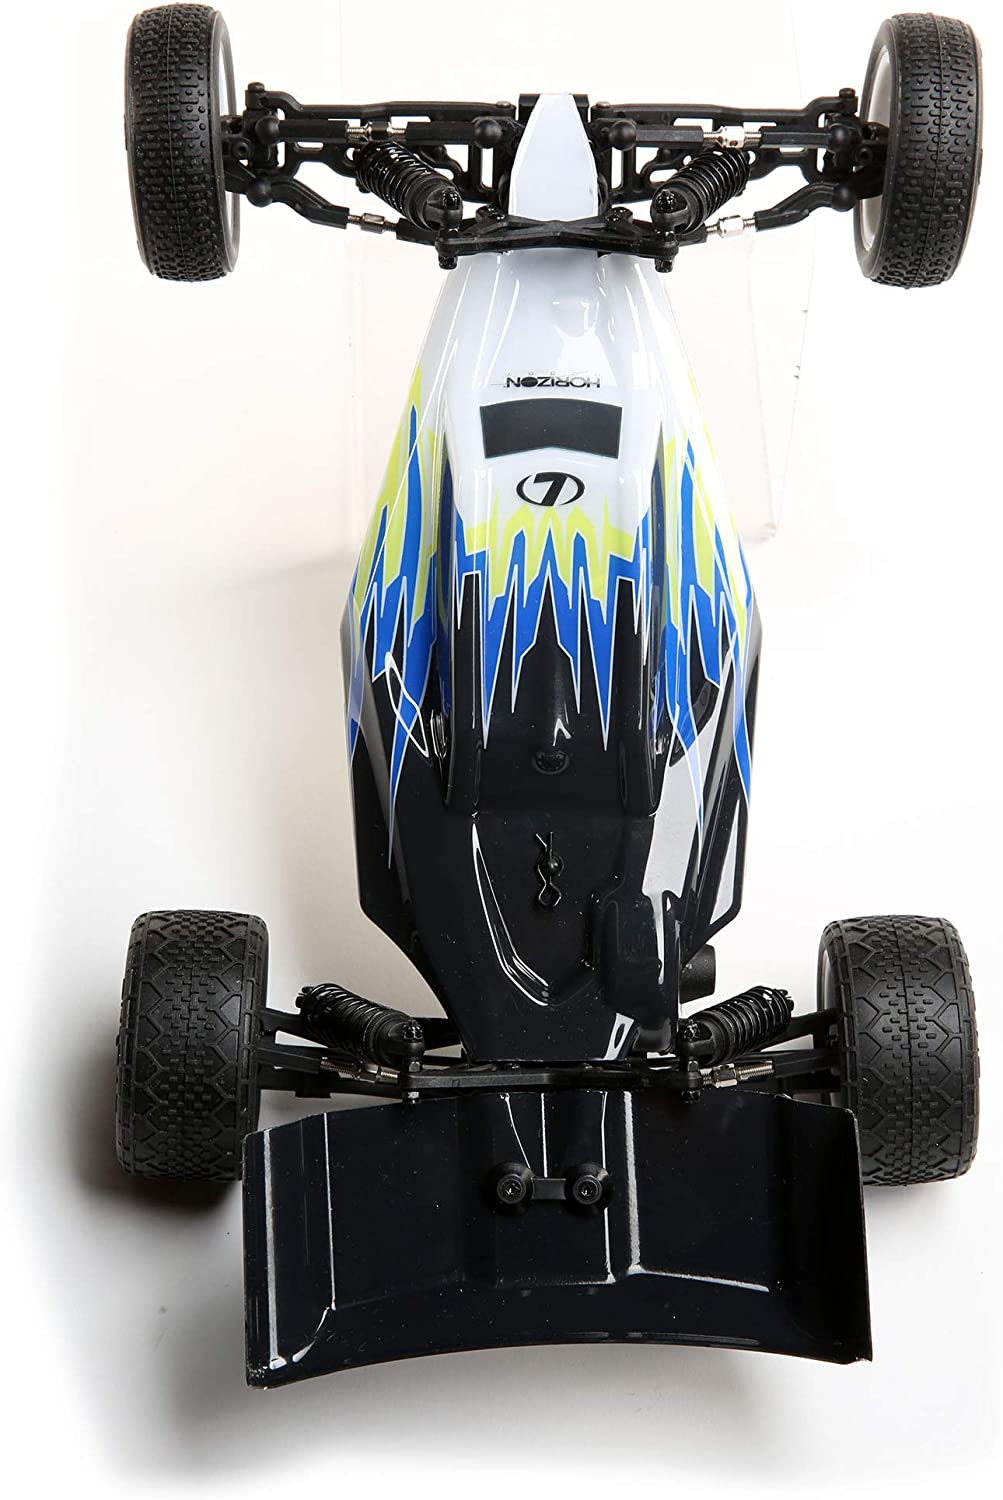 Black//White Ready-to-Run, no Additional Items Needed Losi RC Car 1//16 Mini-B Brushed RTR LOS01016T2 2WD Buggy